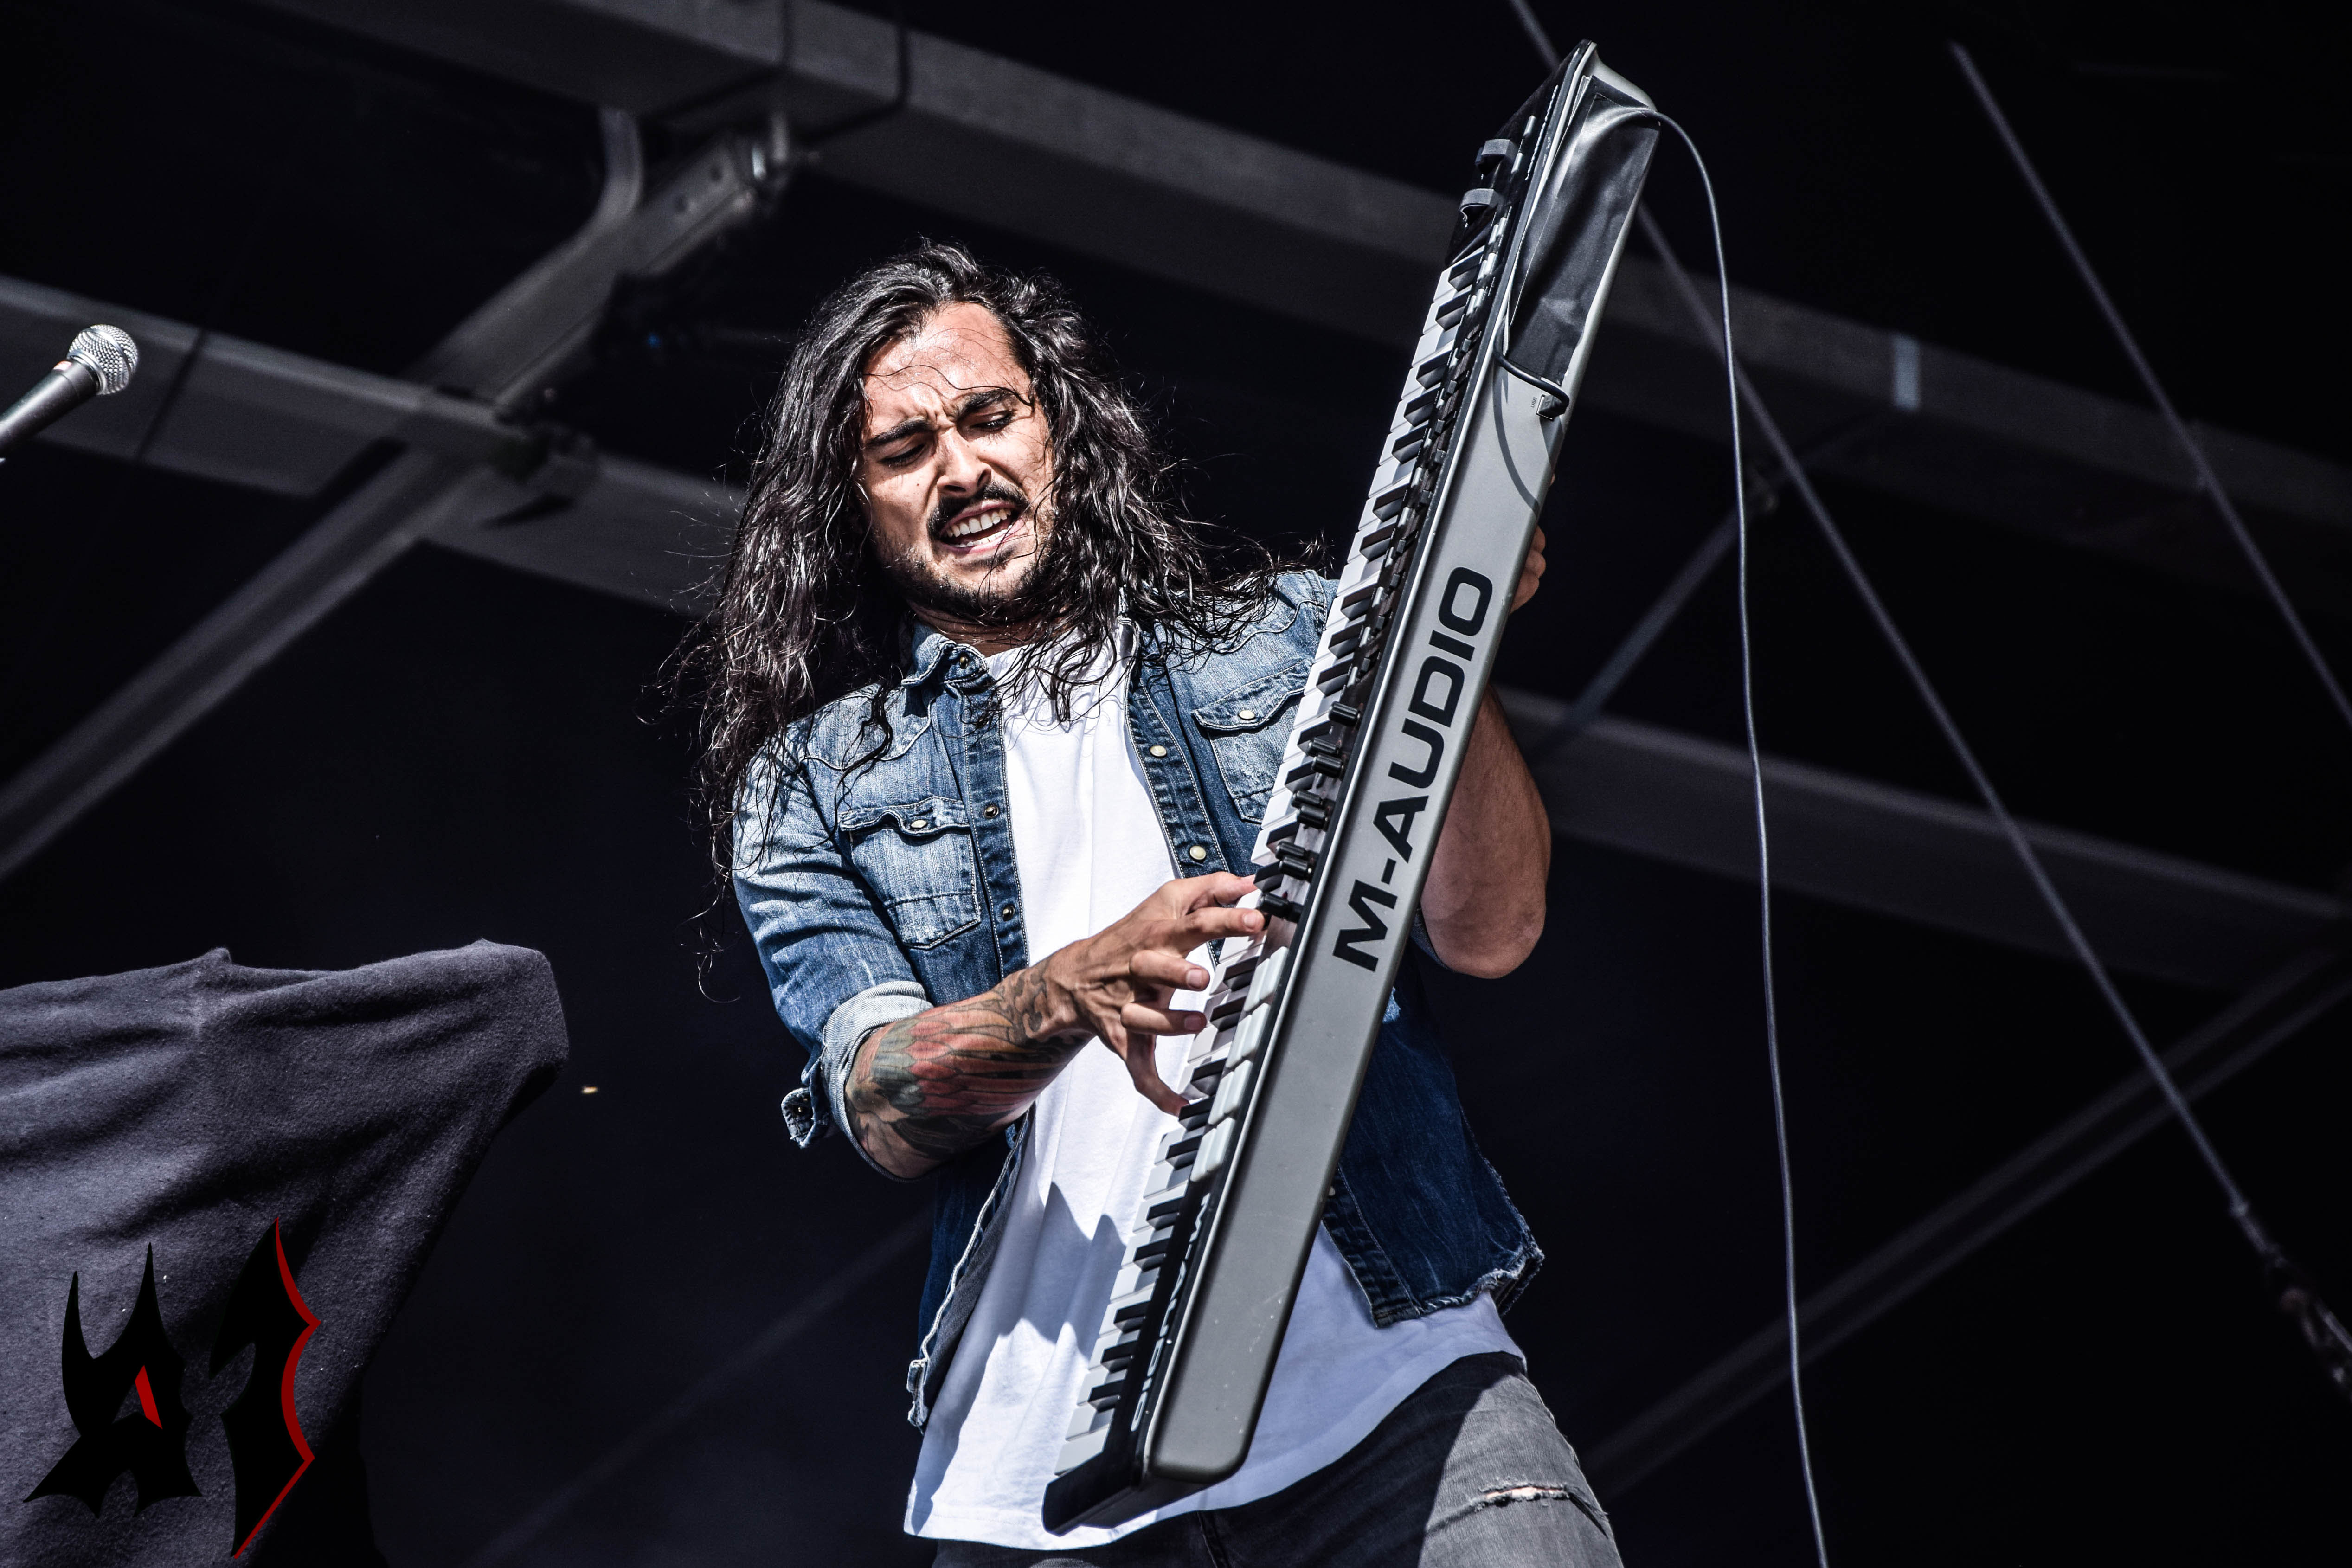 Donwload 2018 – Day 2 - Betraying The Martyrs 10